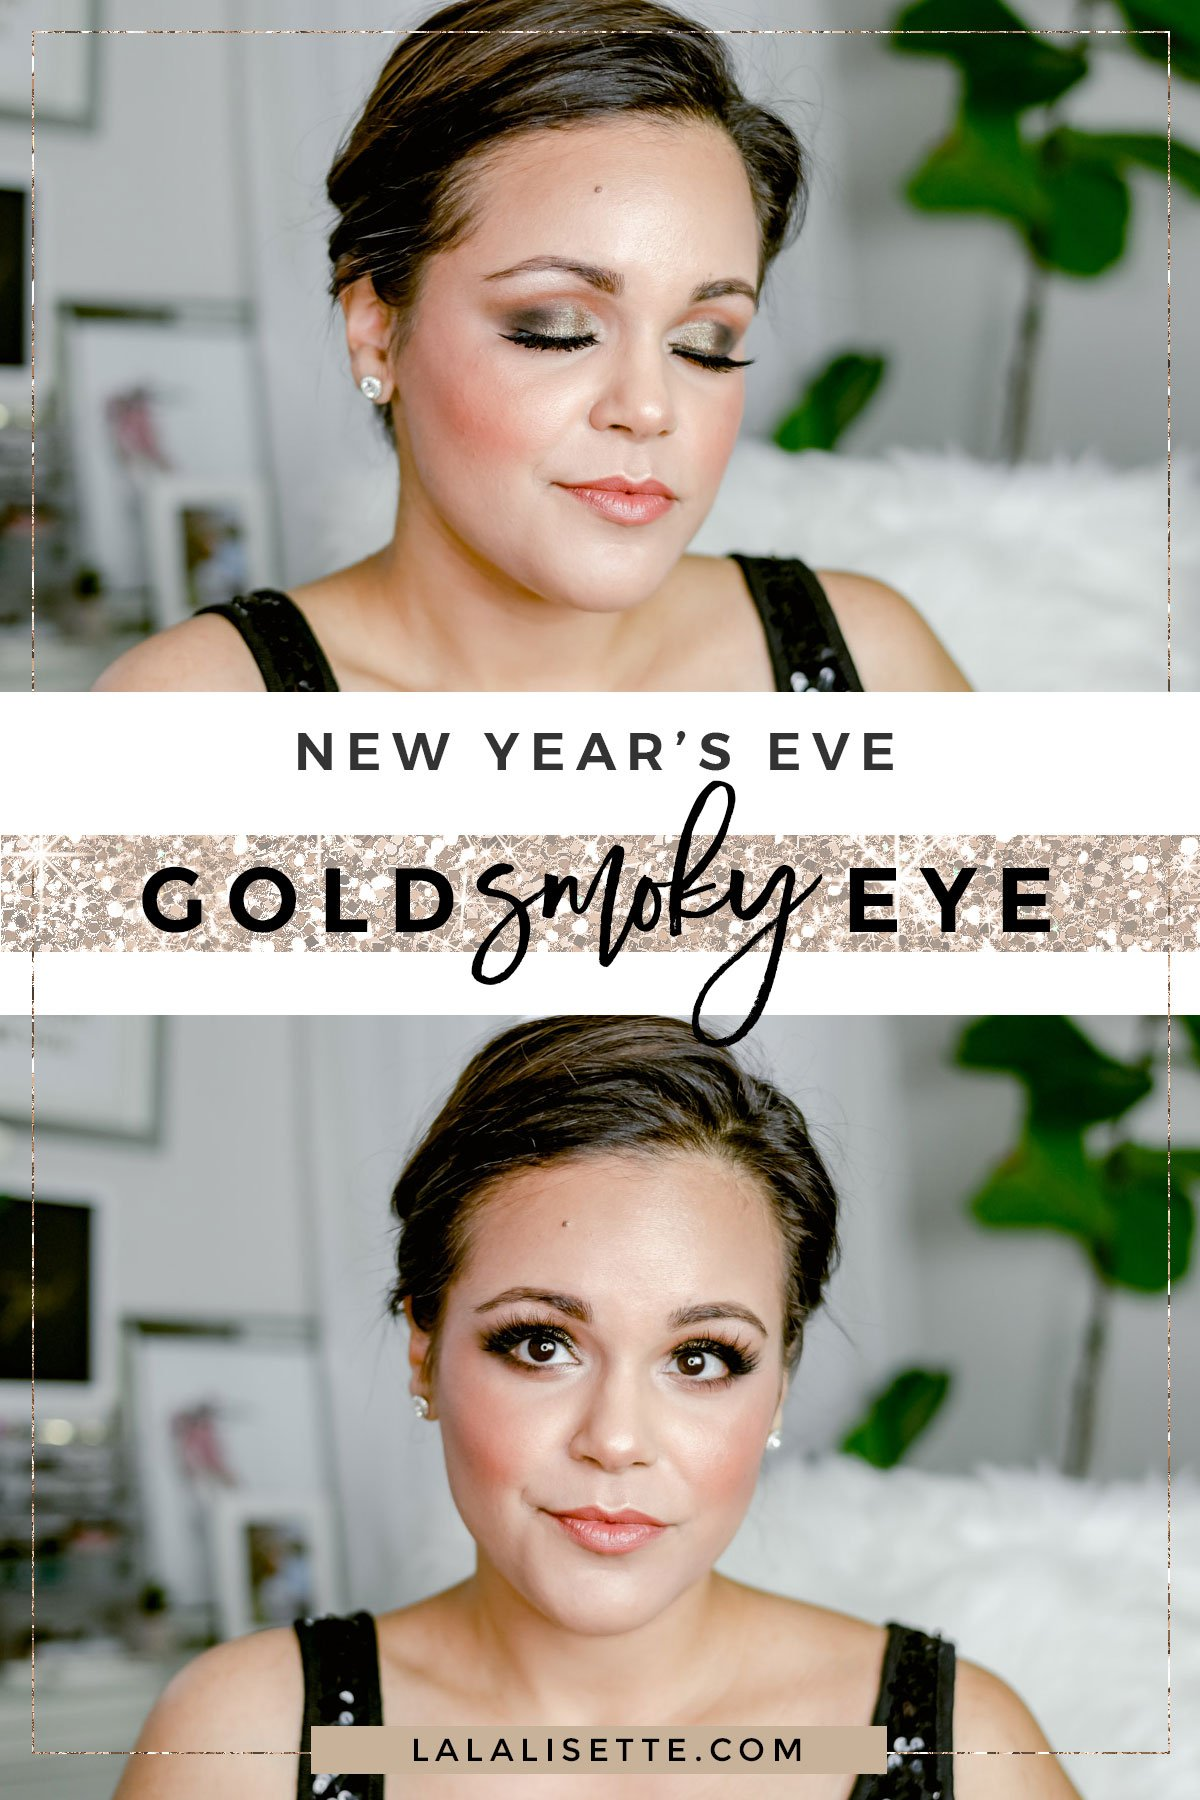 Glam & Gold Smoky Eye for New Year's Eve | Looking for a sparkly gold look for new years? This look will give you so many compliments! This is a warm gold makeup look for tan and brown skin and fair skin- La La Lisette #nyemakeup #nye #makeup #beautycounter #saferbeauty #cleanbeauty